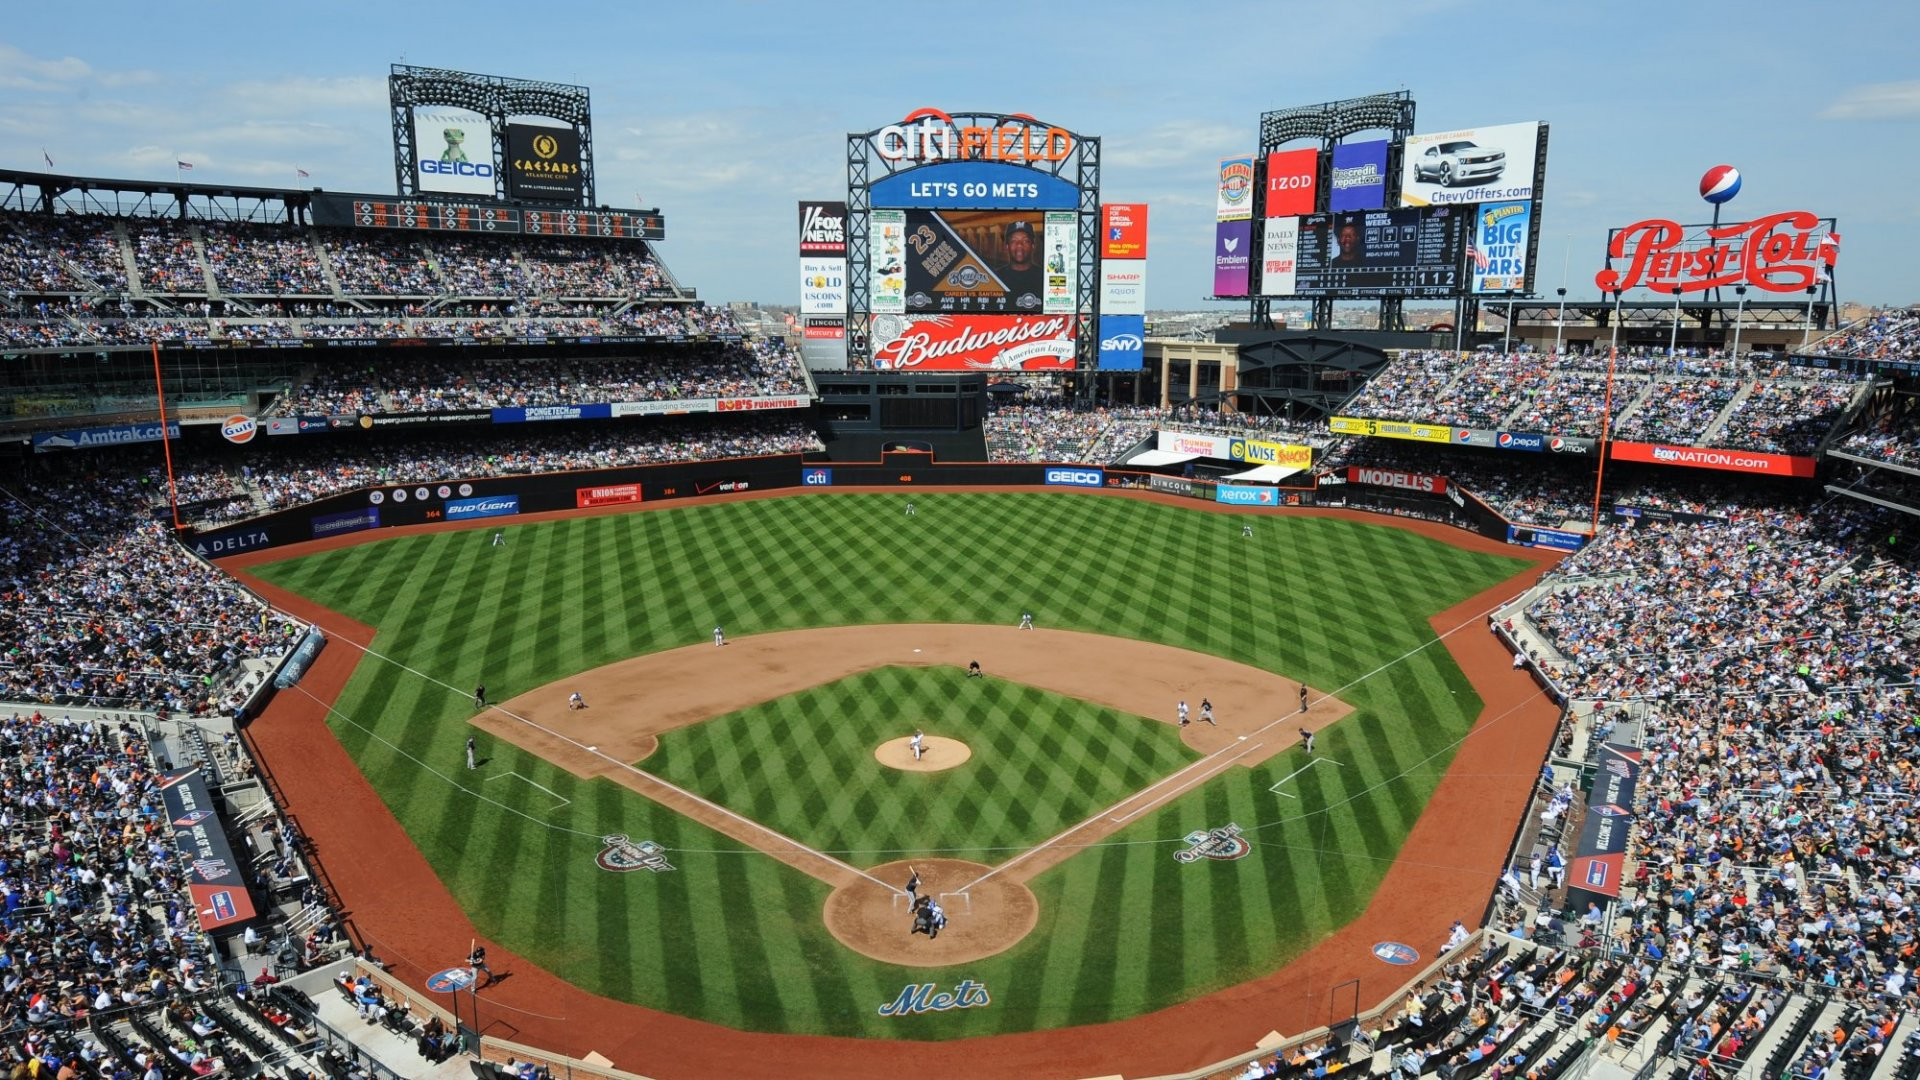 Citi Field, home of the New York Mets, in Flushing, Queens.